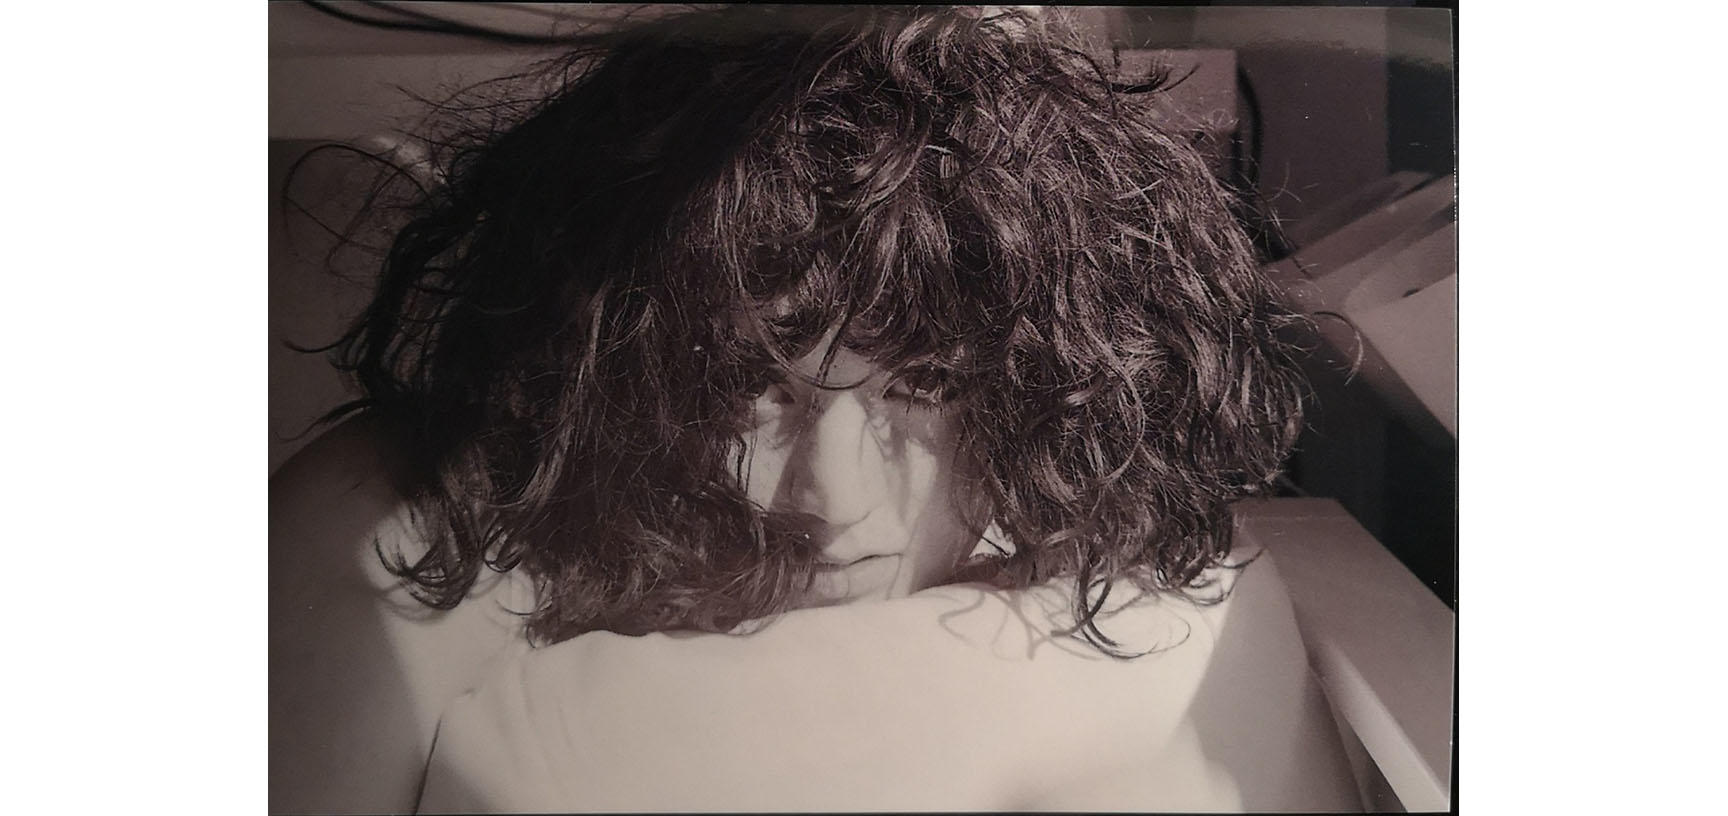 A close up on a woman's face - she looks directly at the camera and her hair tumbles down over her face